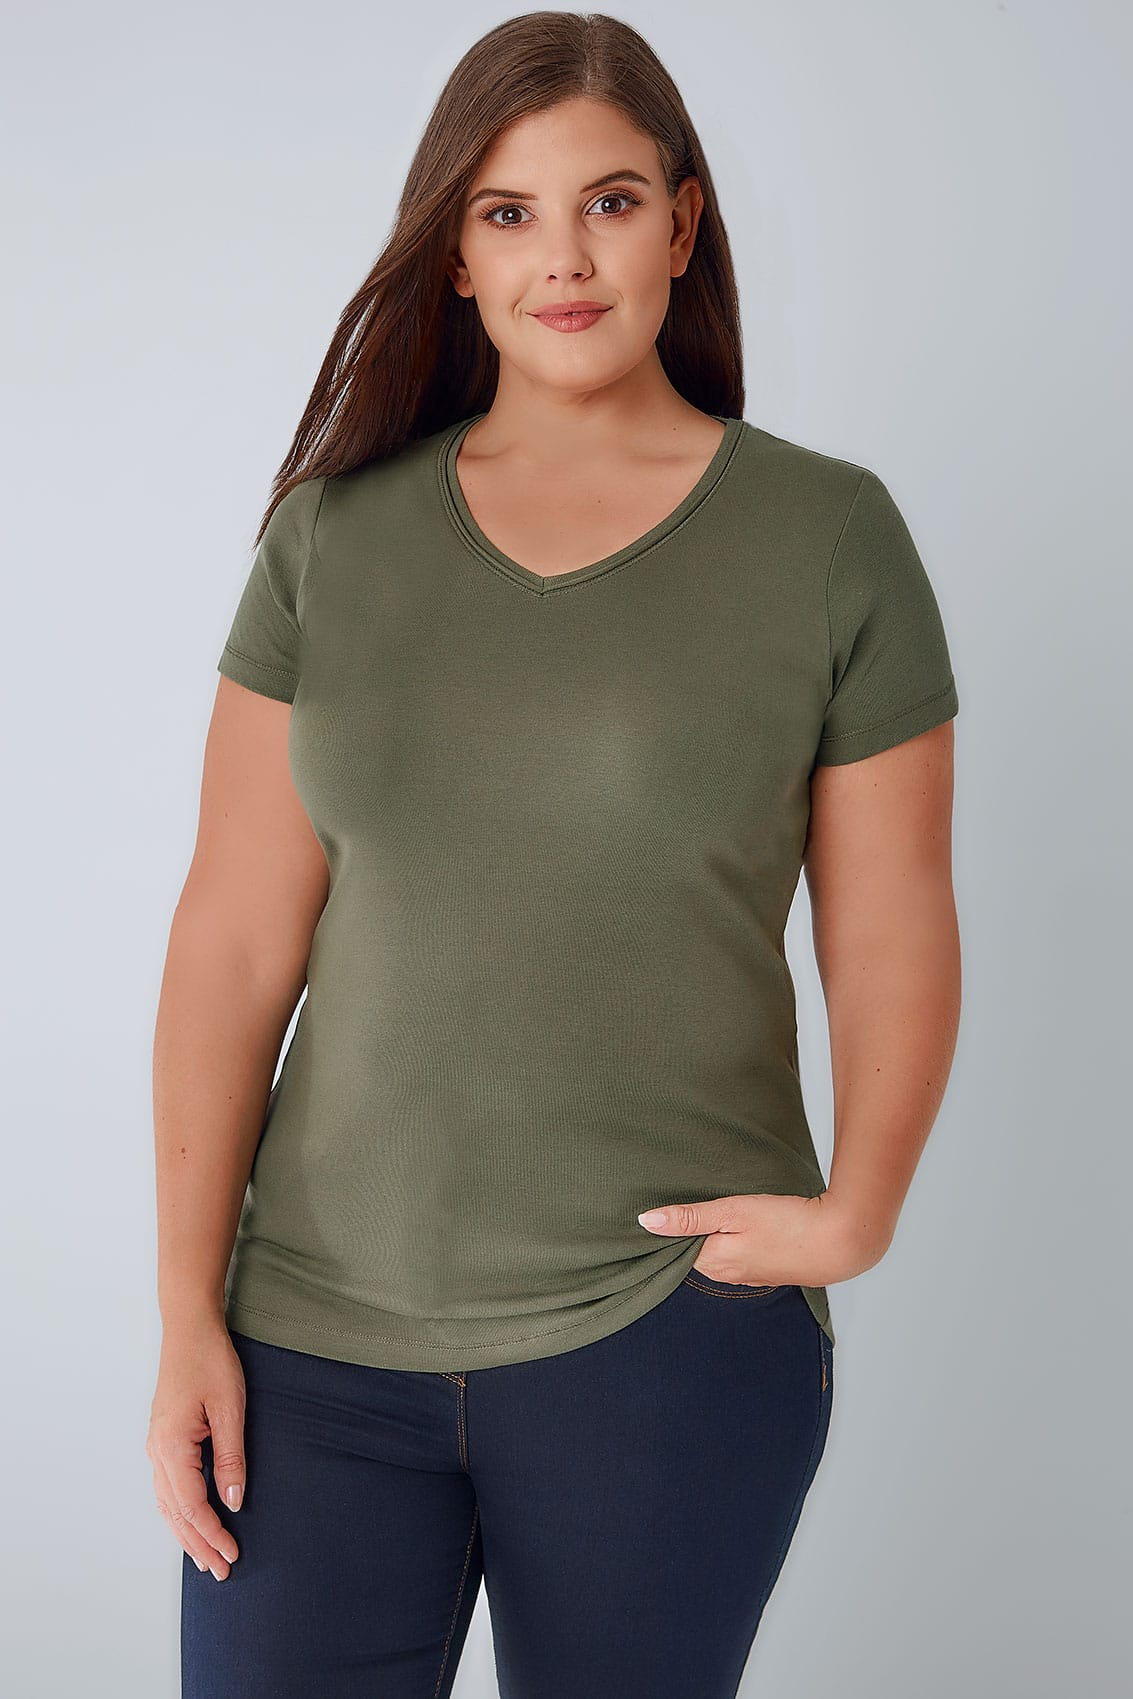 Khaki Short Sleeved V Neck Basic T Shirt Plus Size 16 To 36